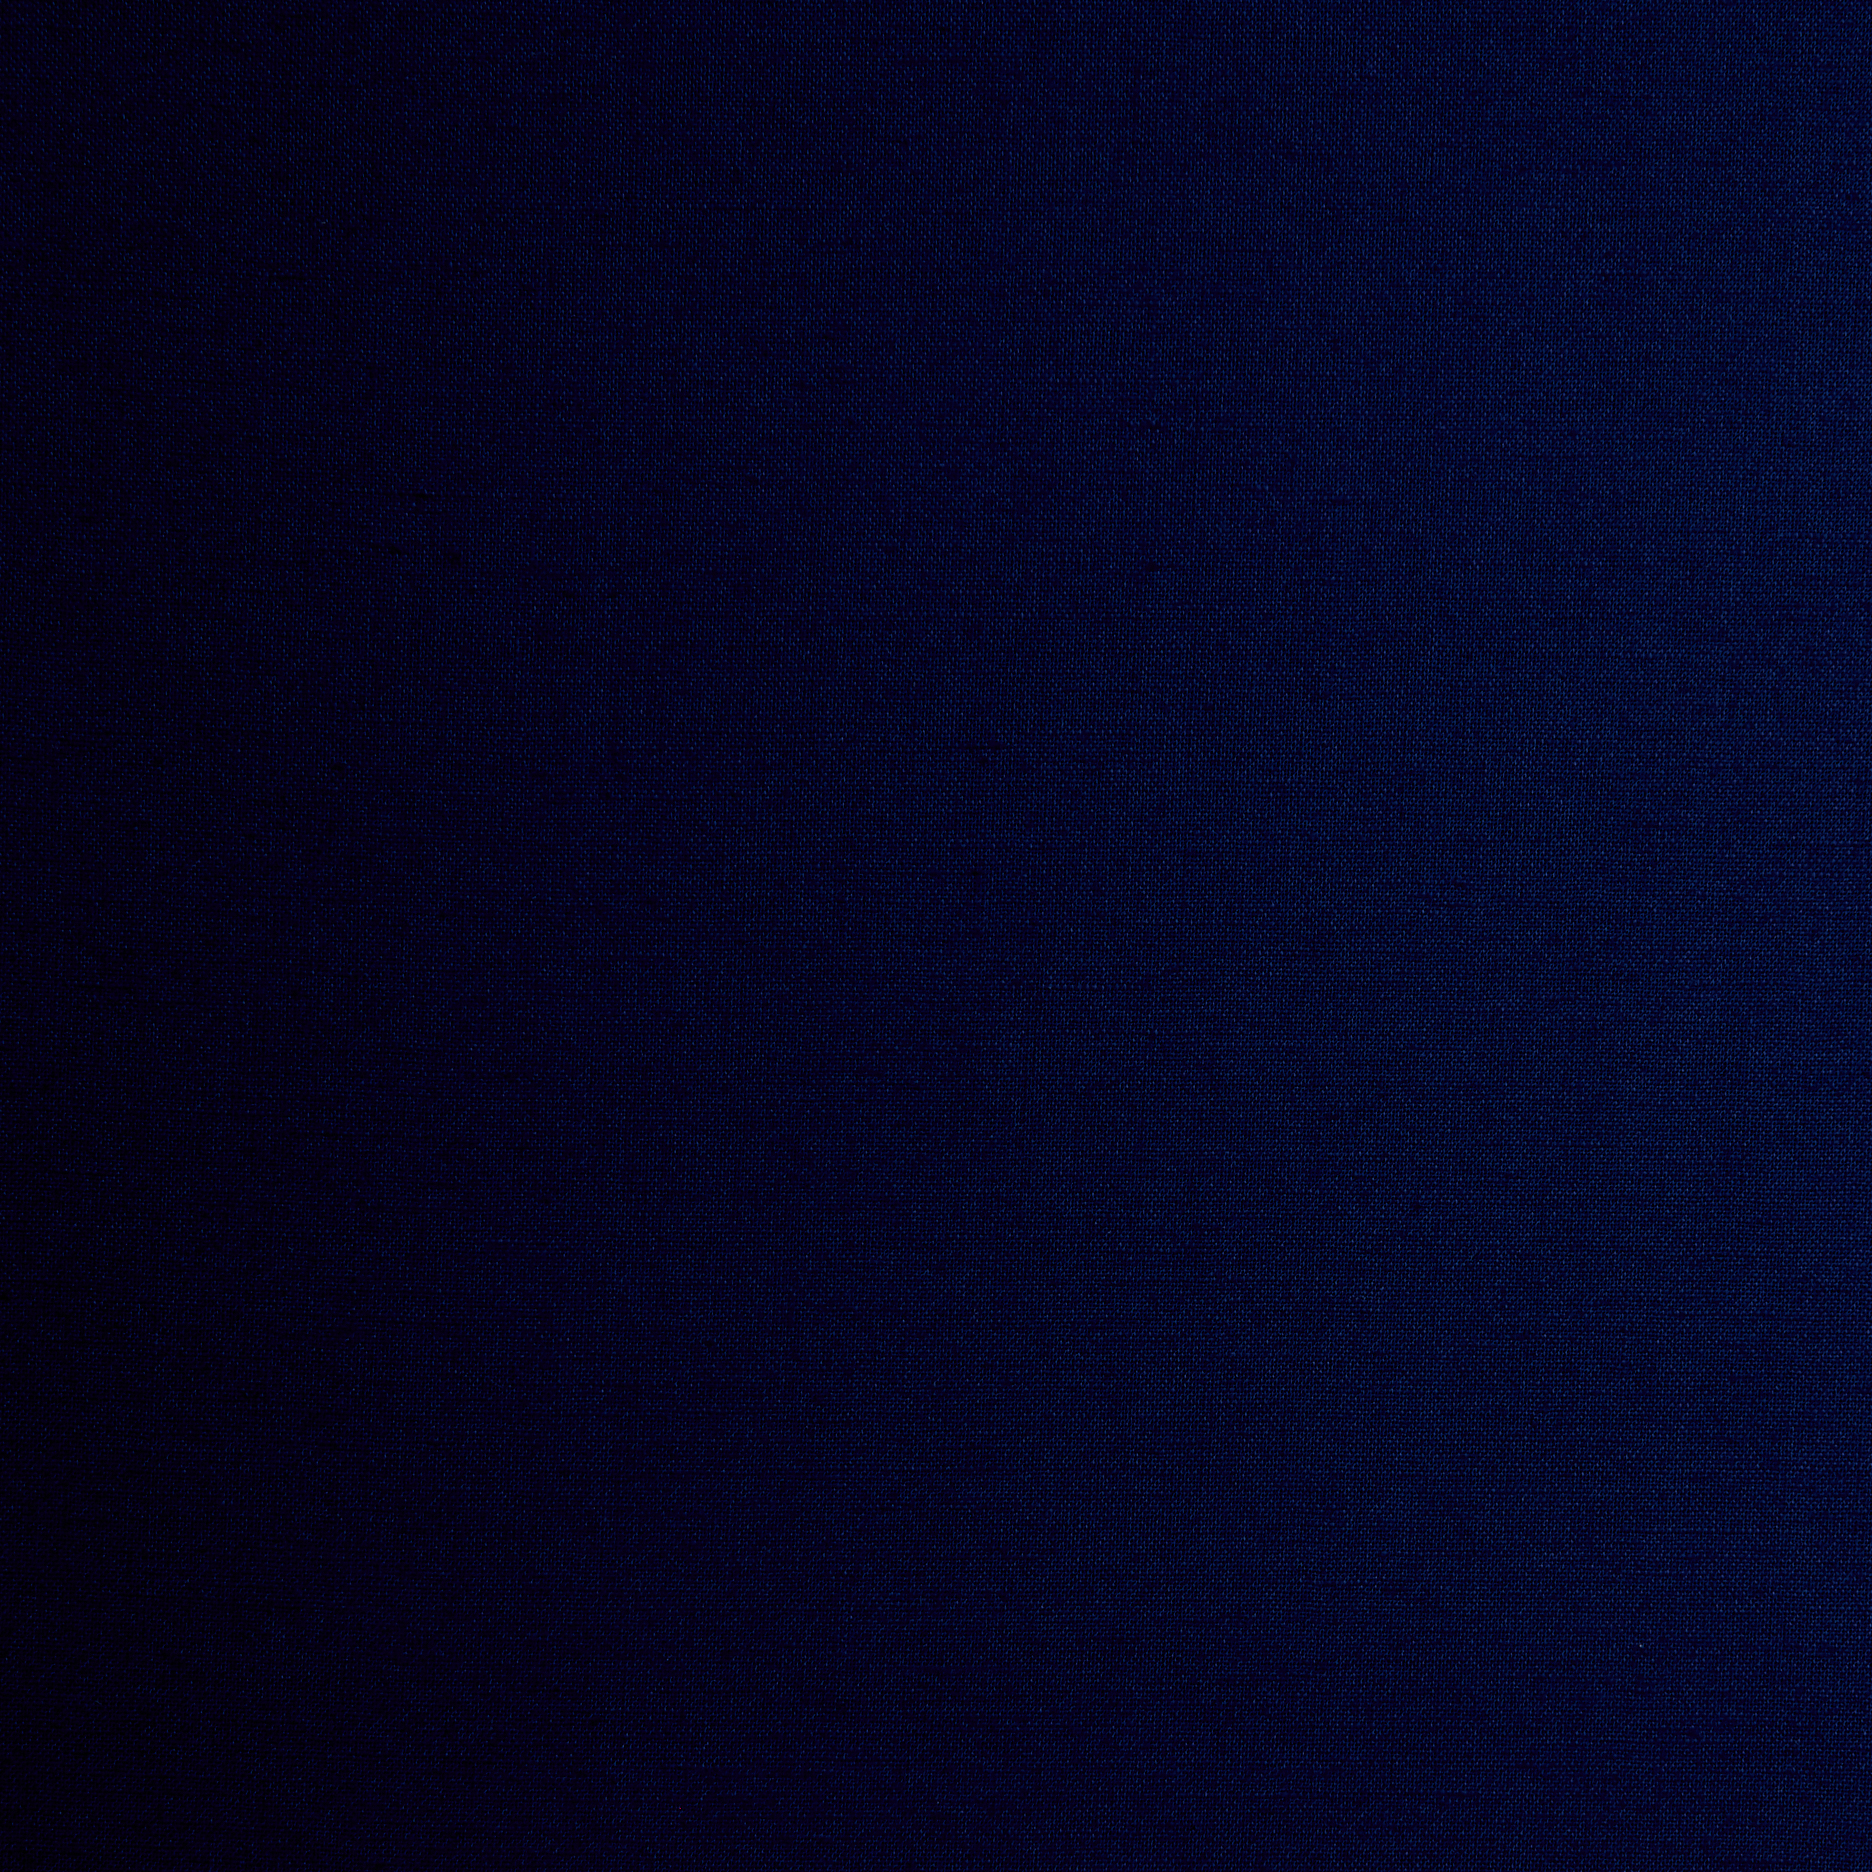 Michael Miller Cotton Couture Broadcloth Midnight Blue Fabric